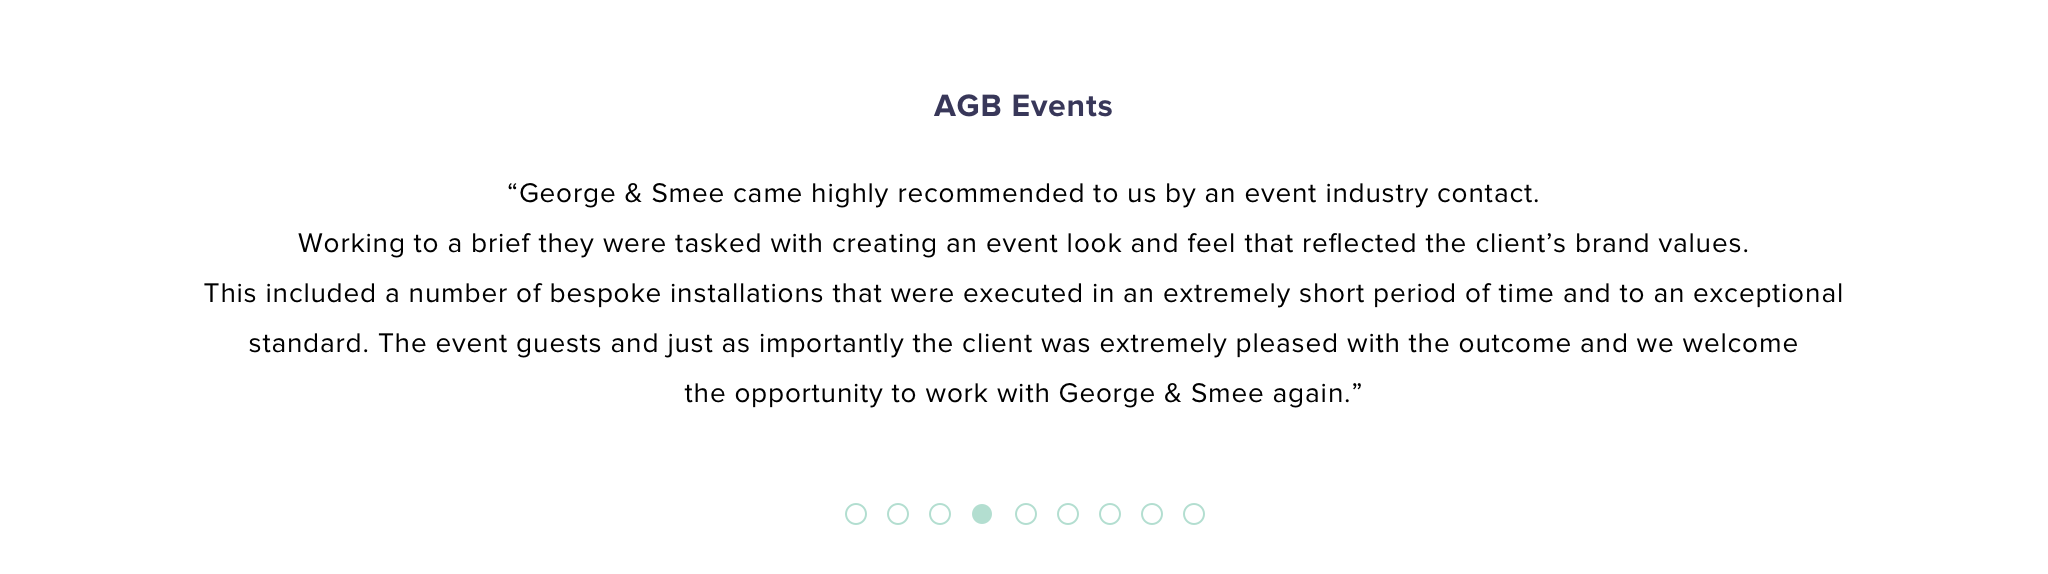 04-AGBEvents.png